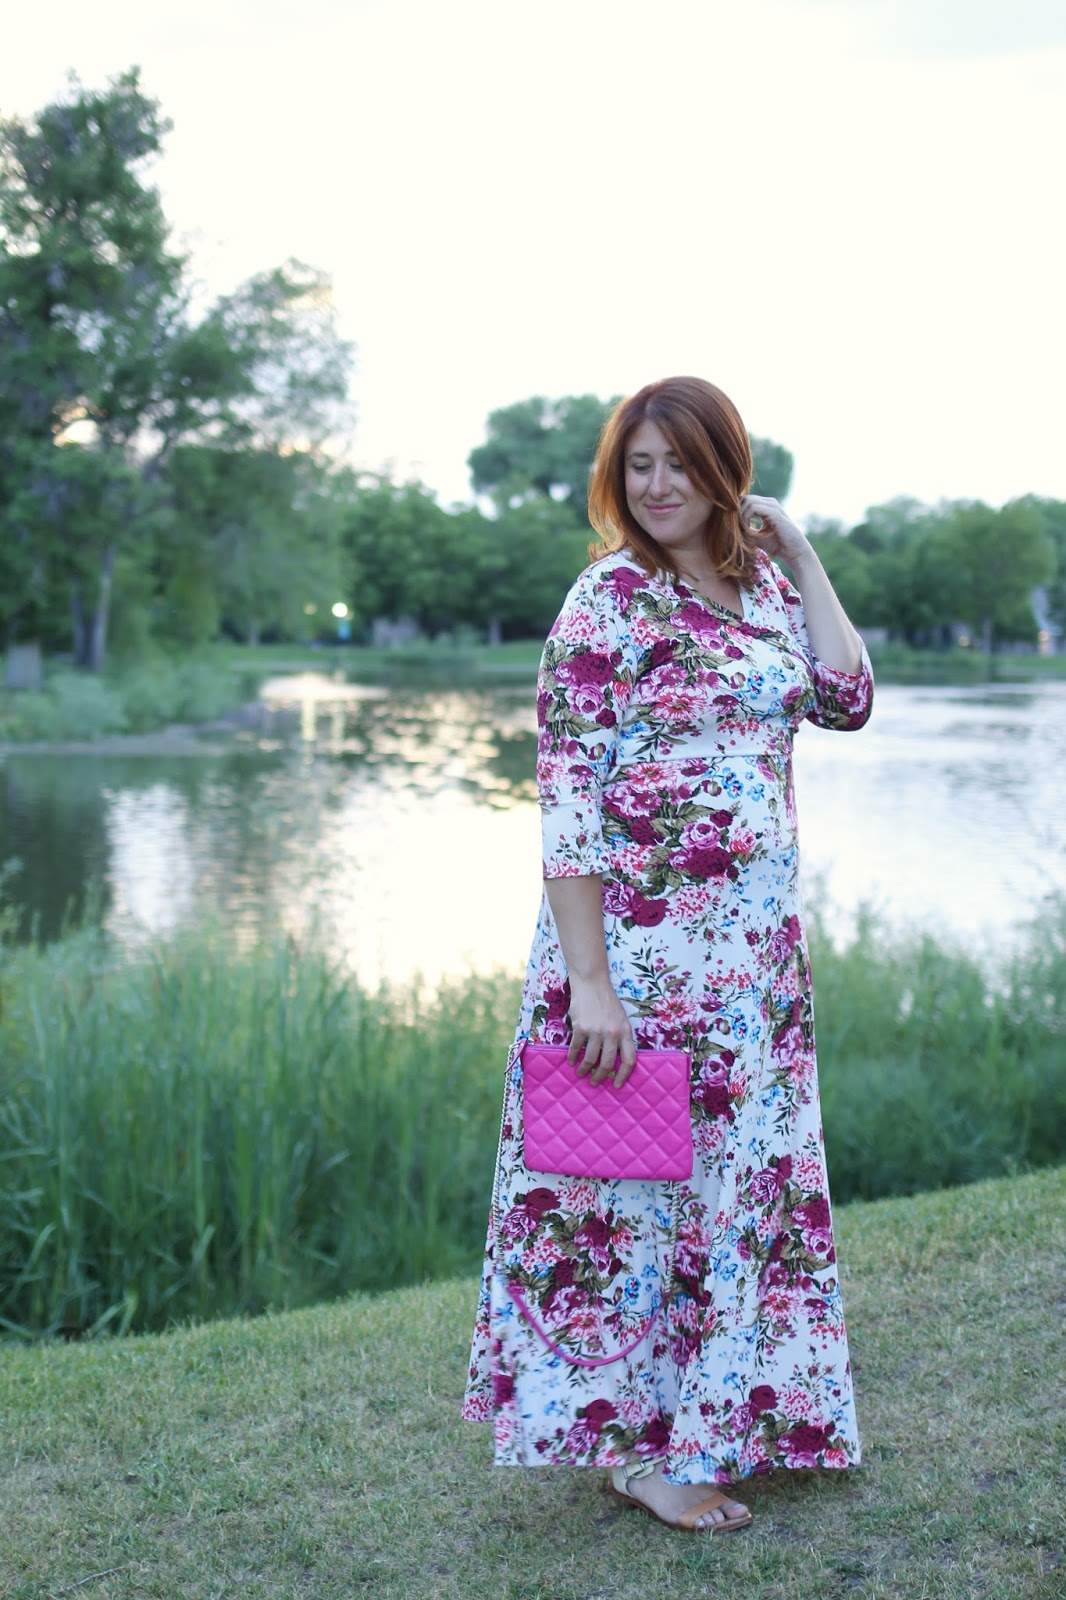 maternity style, pregnancy fashion, outfit ideas, comfortable style, floral maxi dress